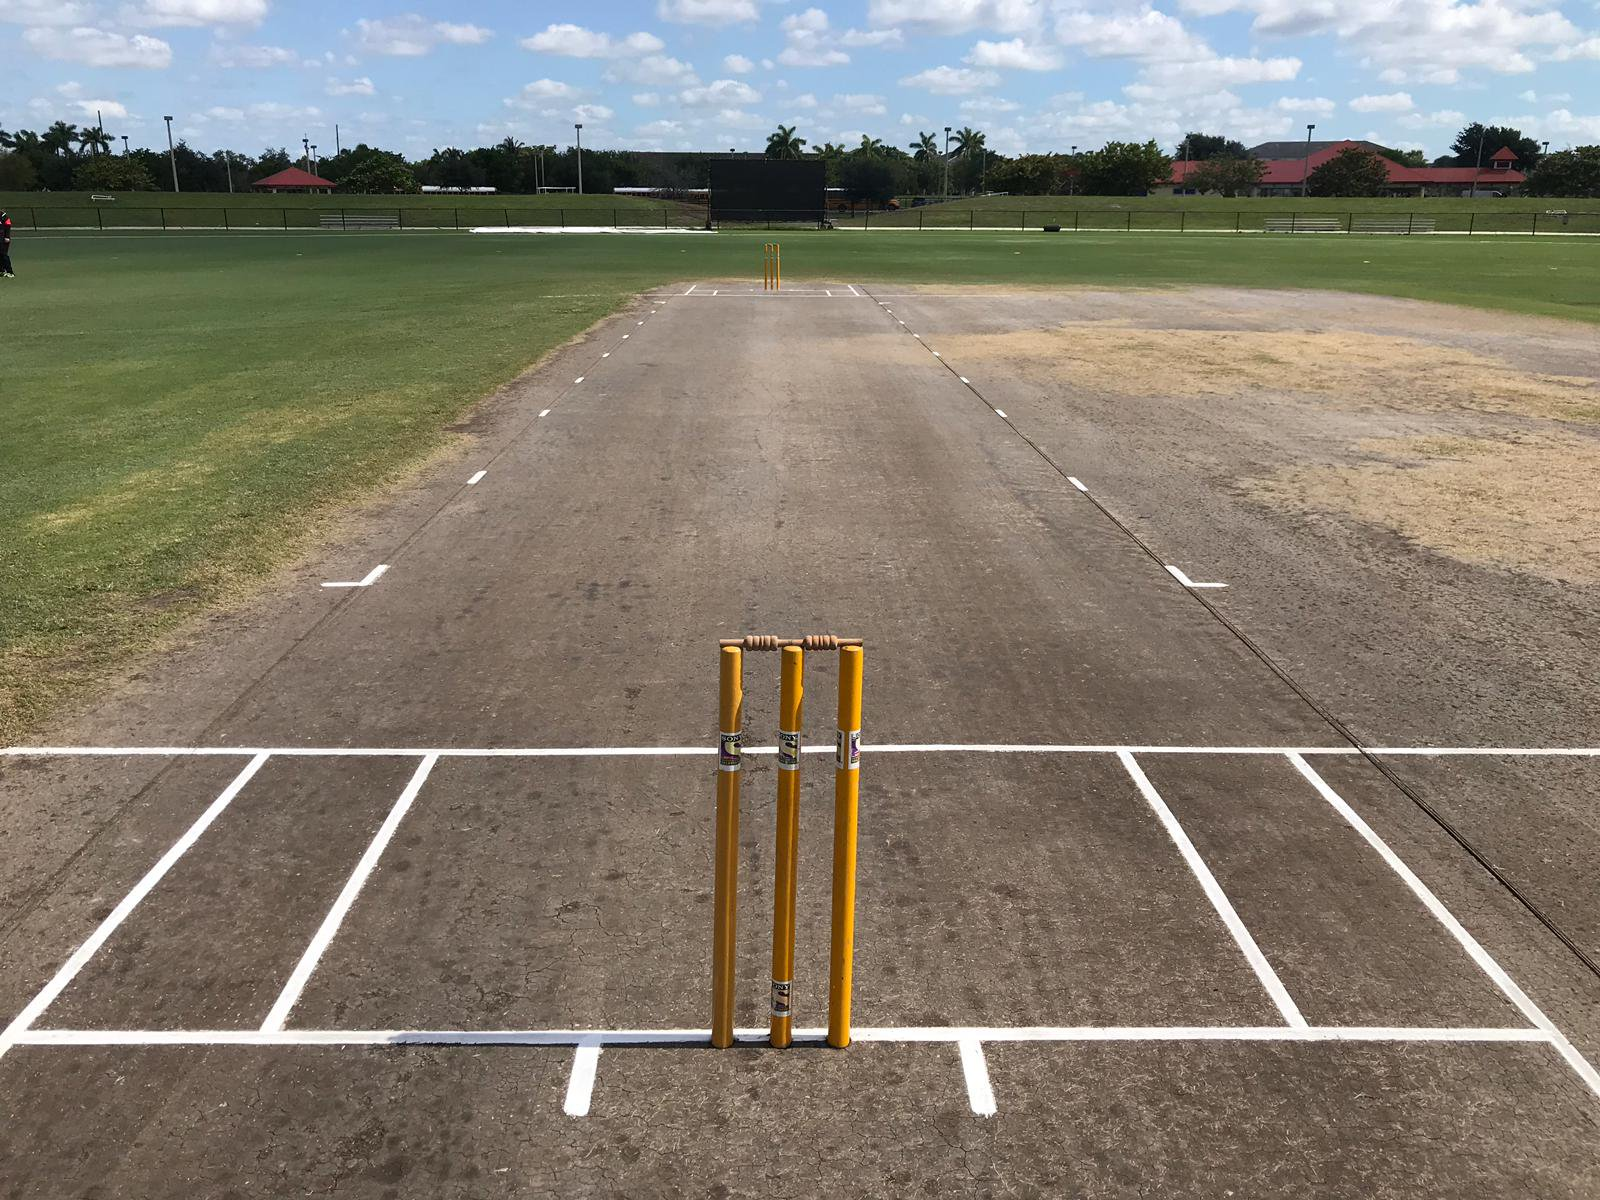 A cricket pitch at Haverford, Pennsylvania. (USA Cricket)